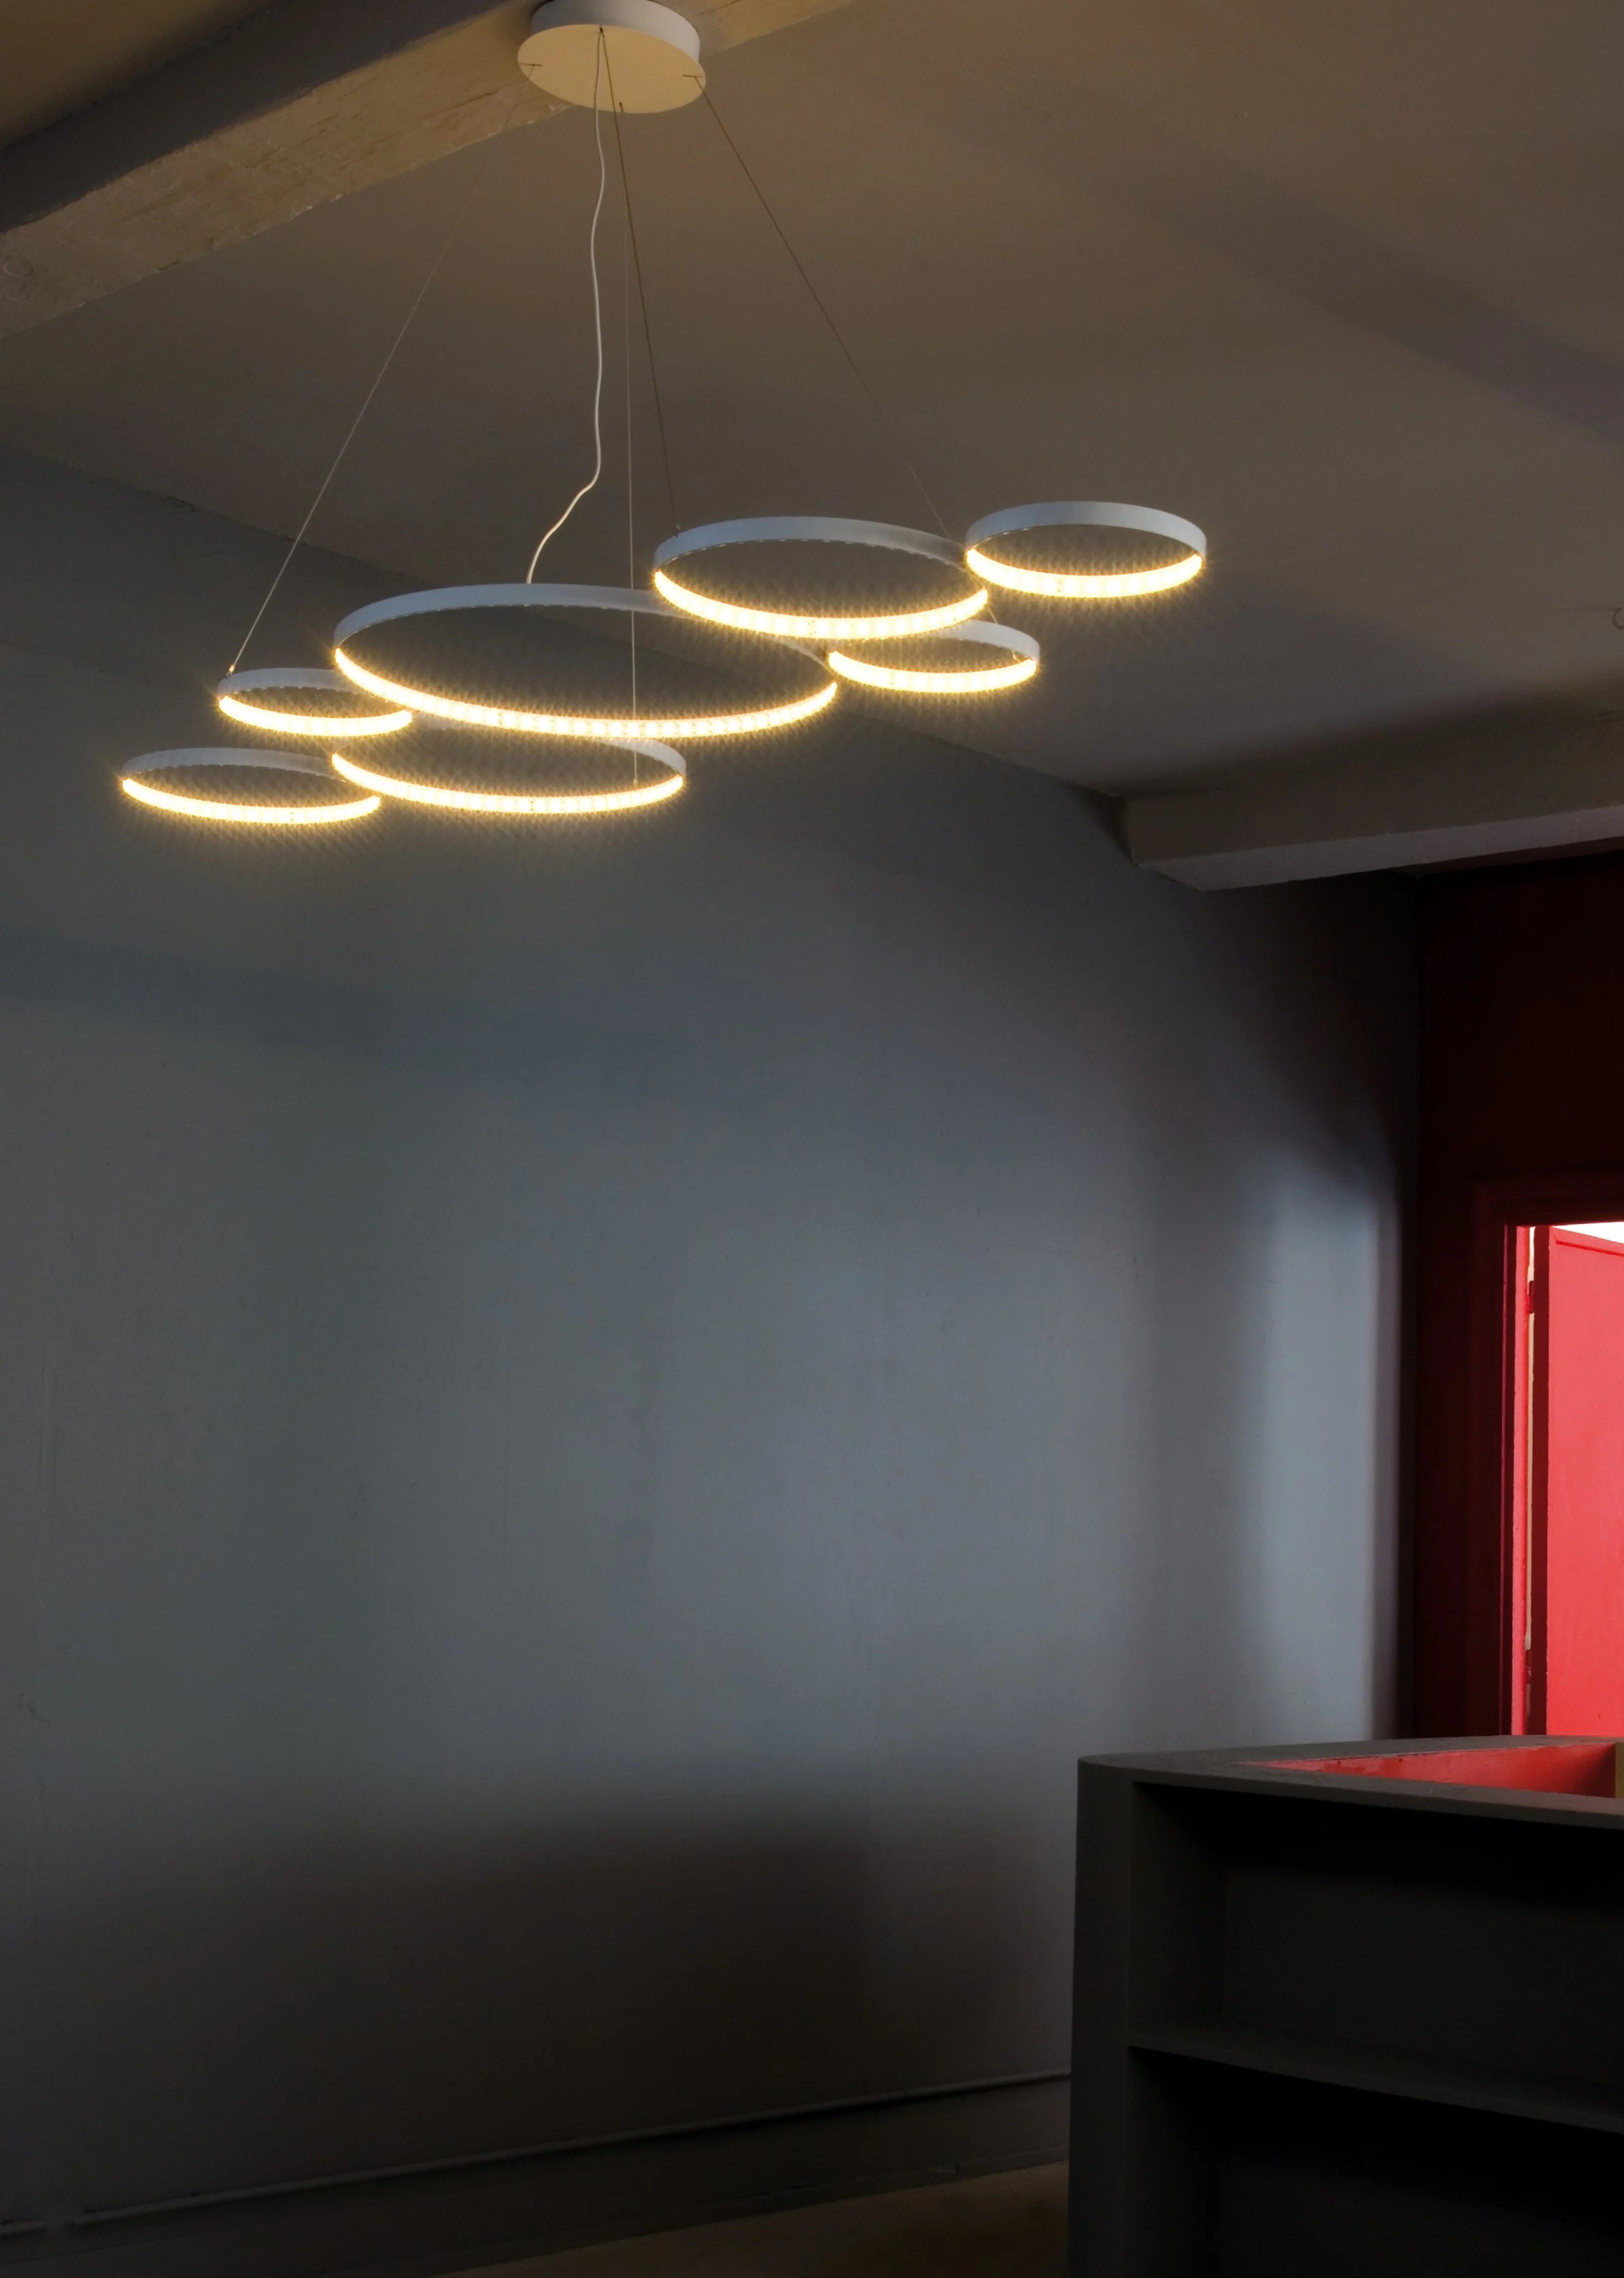 Luminaire Pendant Led Direct Indirect Light Pendant Lamp Ultra8 By Le Deun